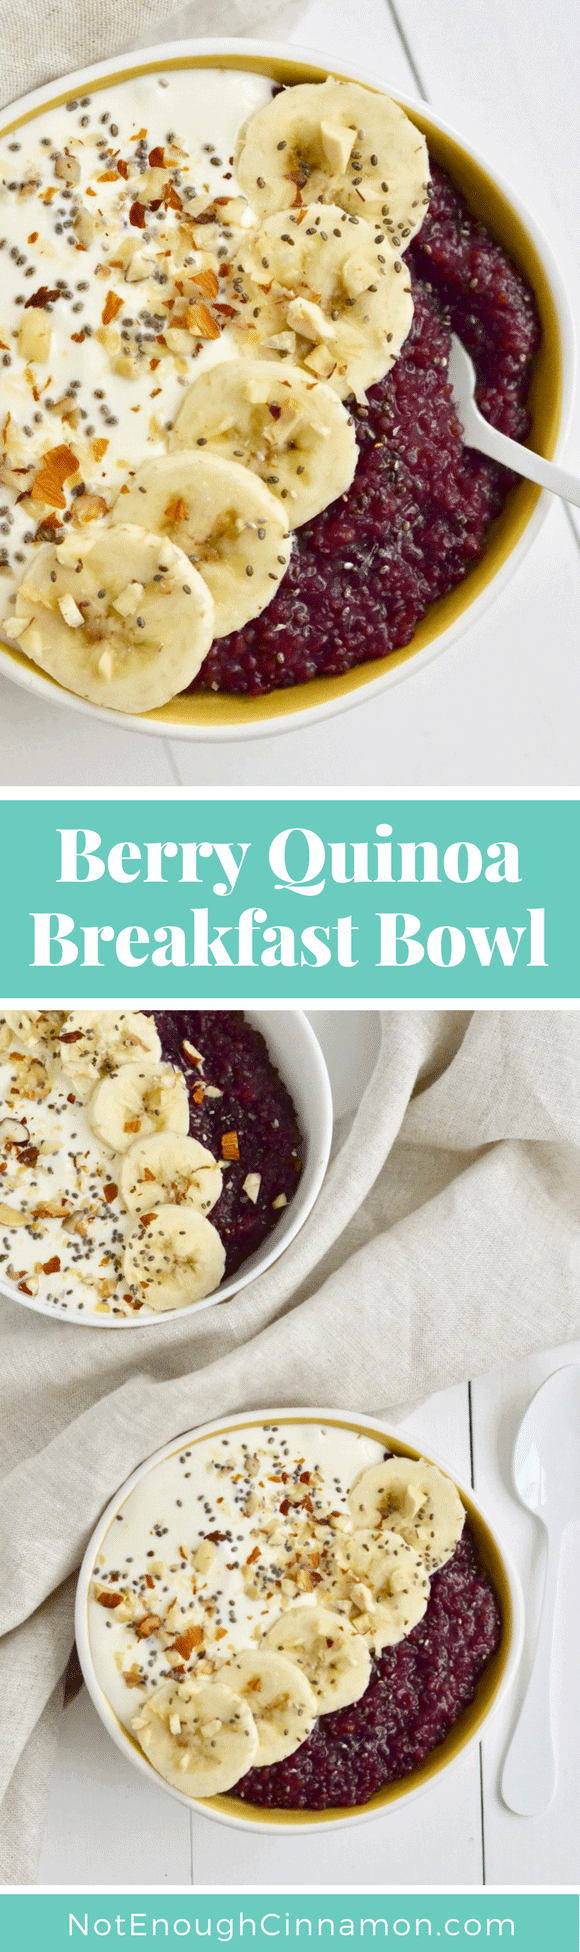 Berry Quinoa Breakfast Bowl | Quinoa for breakfast? Absolutely! In this recipe, the quinoa seeds get a sweet and fruity treatment by simmering with frozen mixed berries, vanilla, cinnamon, and maple syrup! Yay for Quinoa porridge! #quinoabowl, #superfood, #realfood, #breakfastrecipes, #glowbowl, #nourishbowl